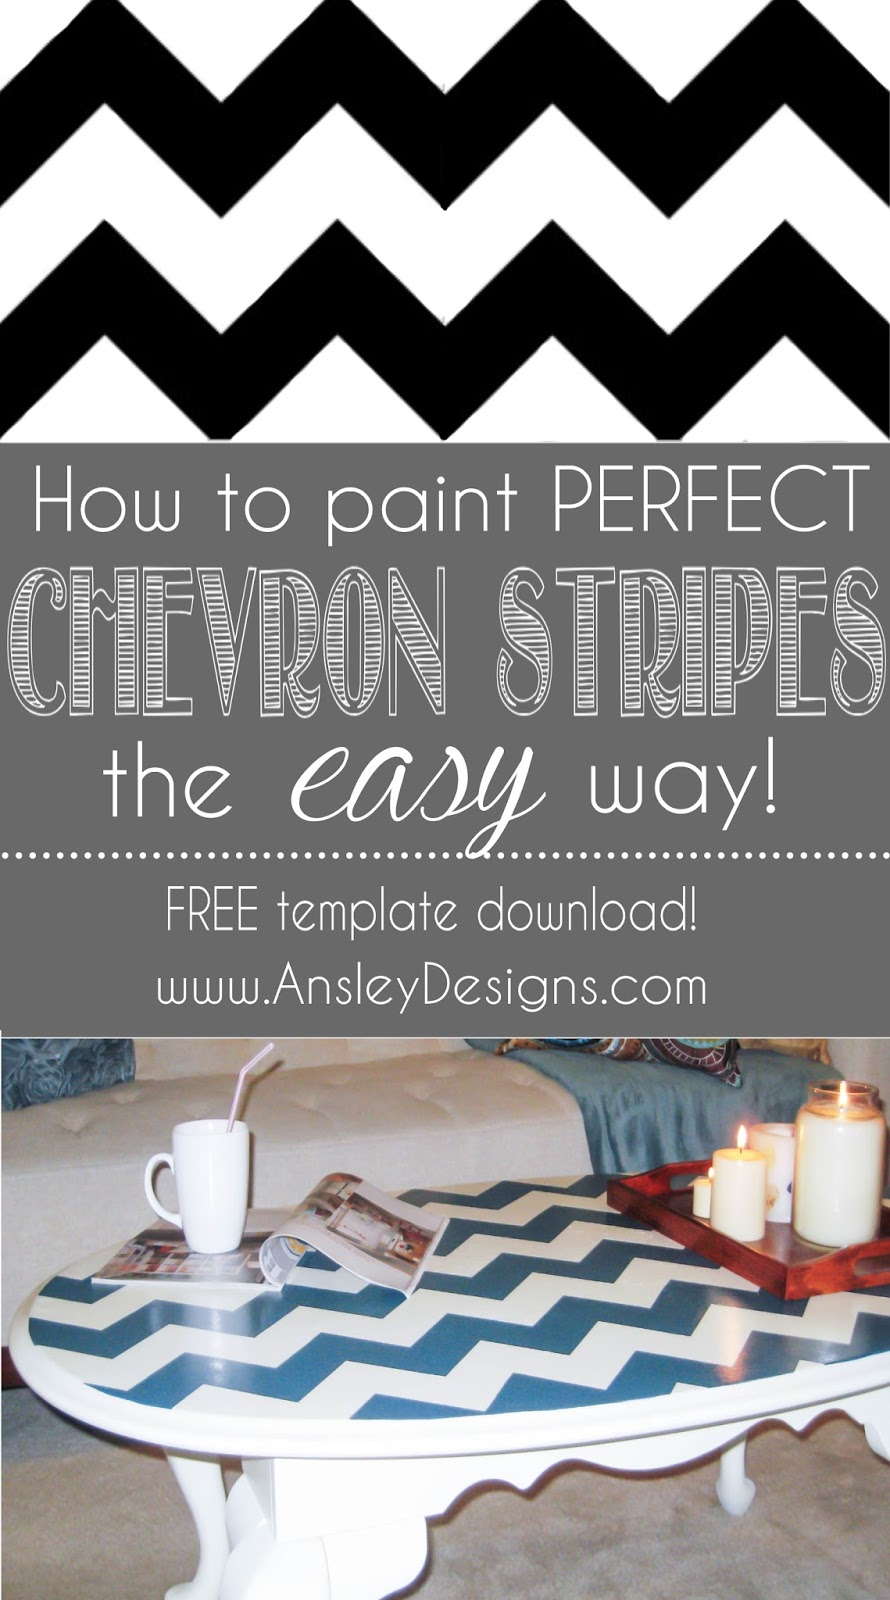 Ansley Designs: How to Paint Chevron Stripes